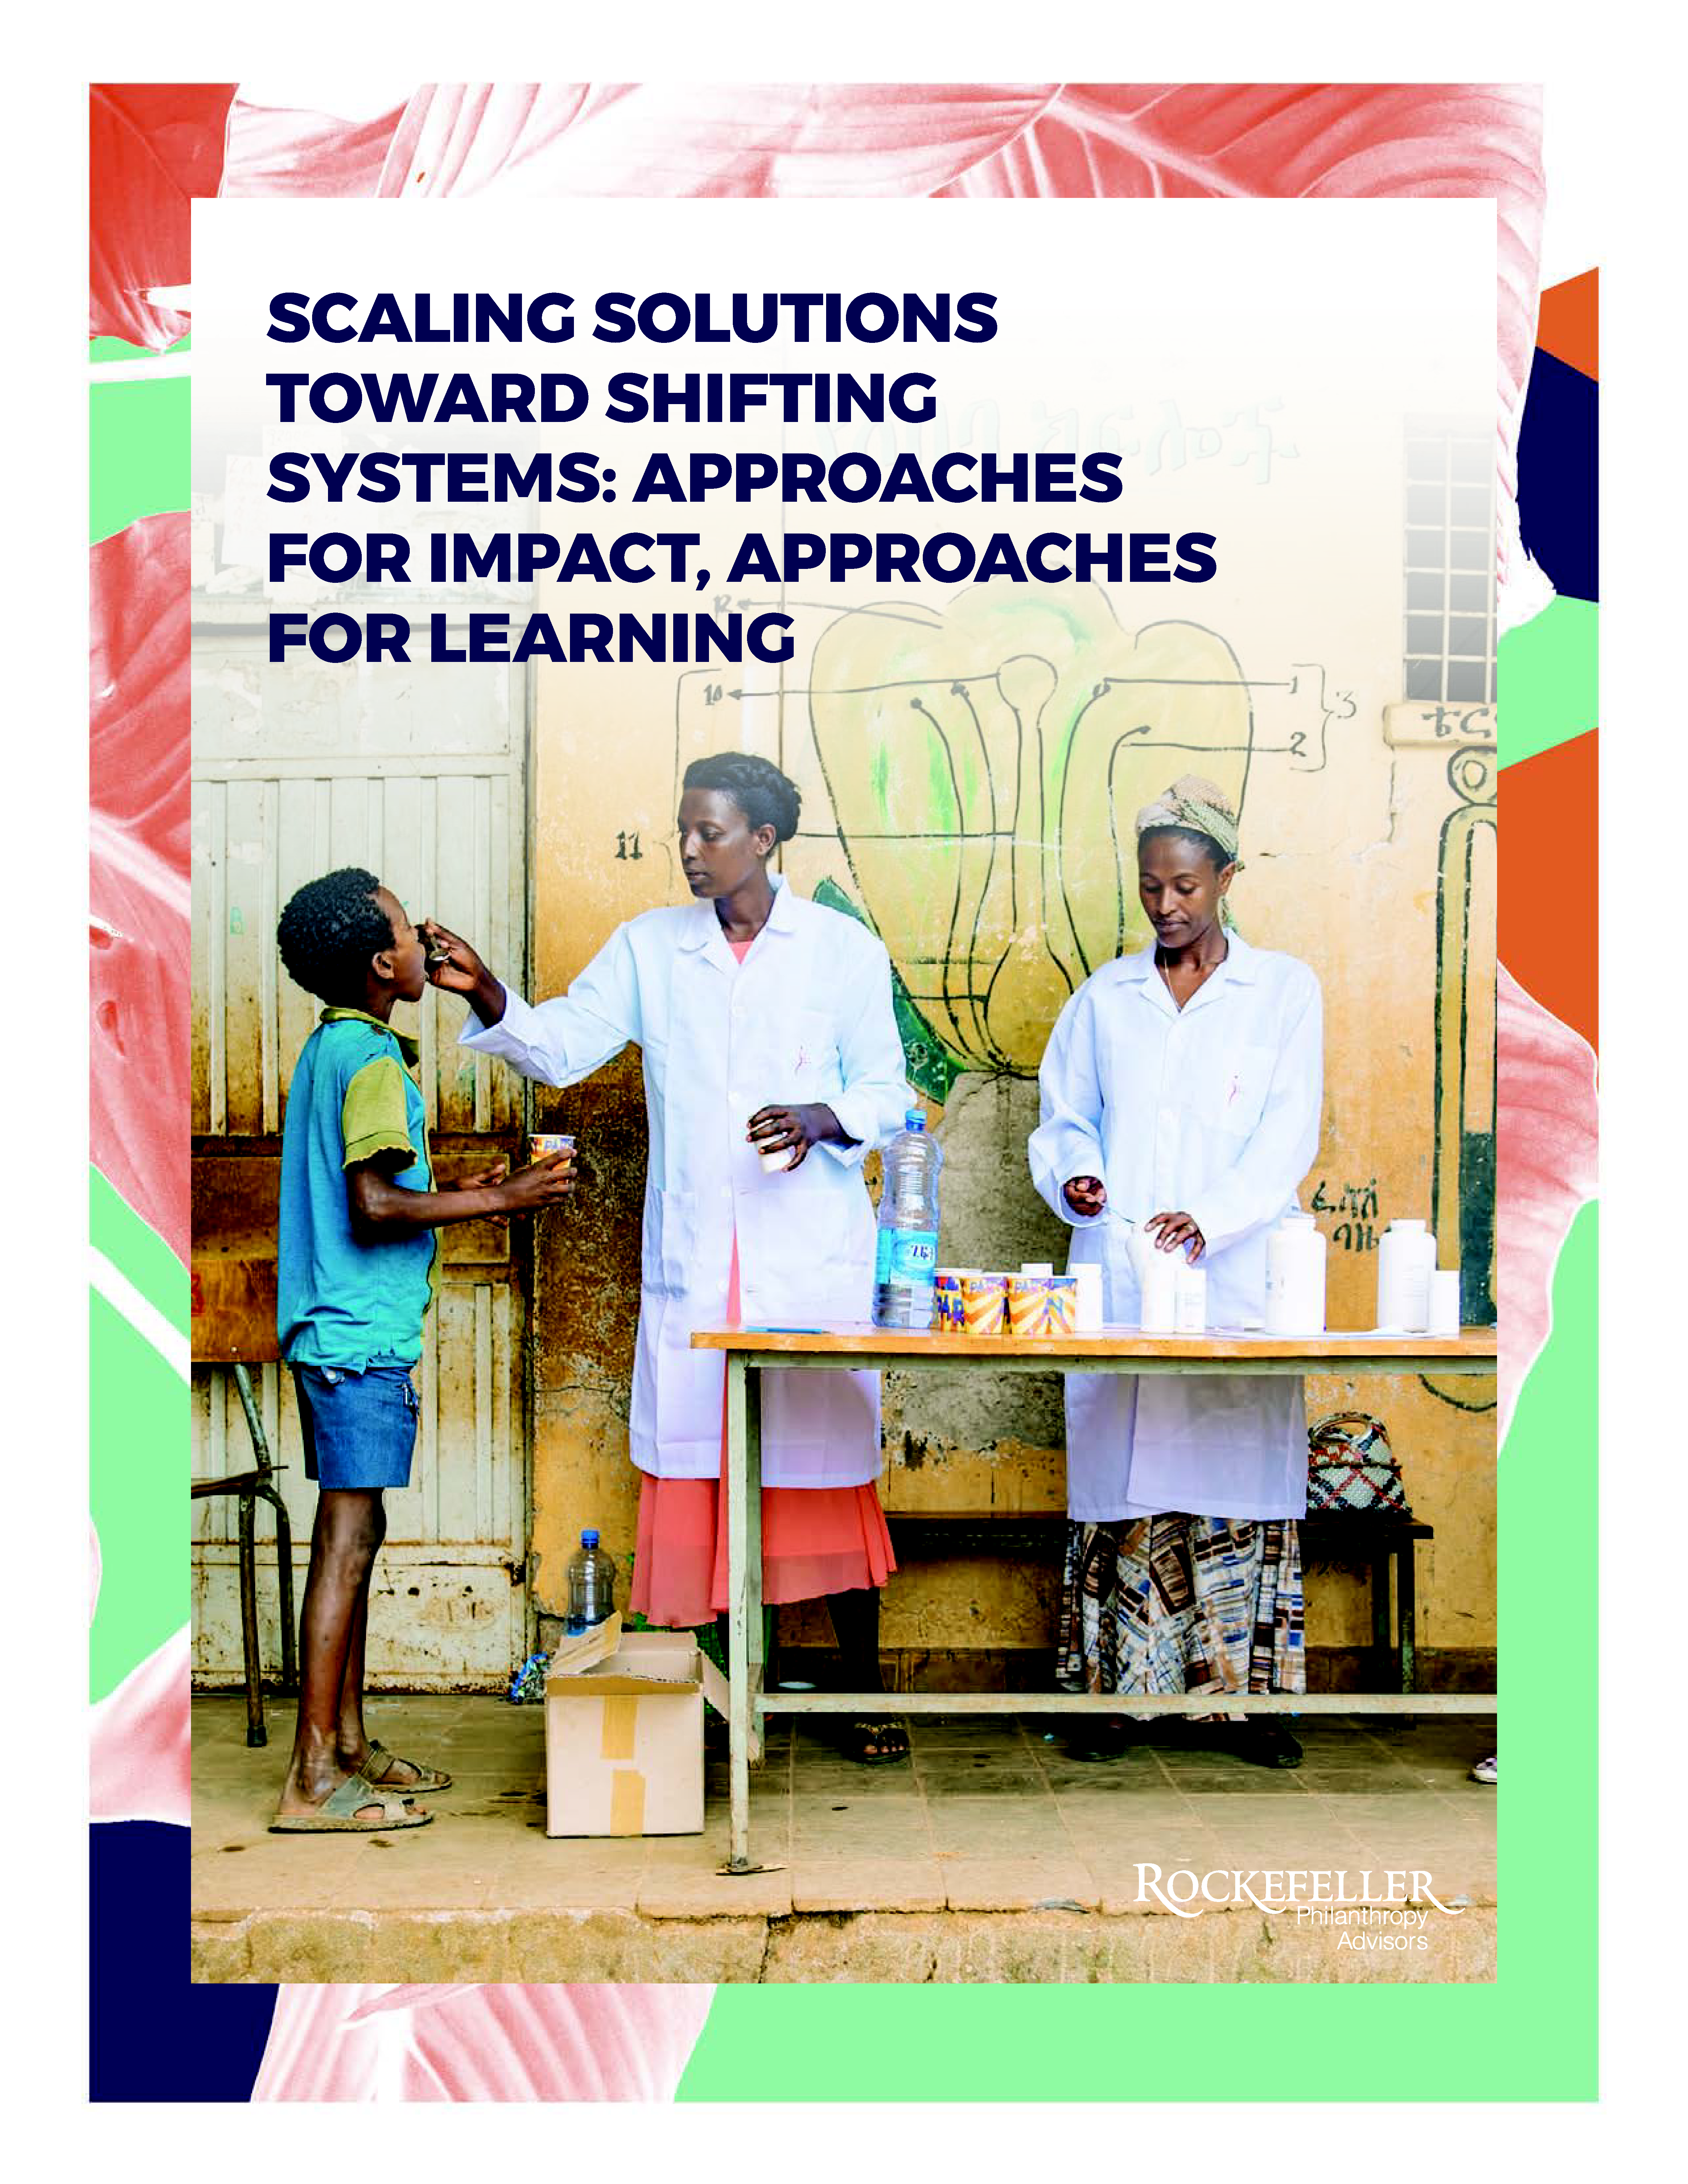 Scaling Solutions Toward Shifting Systems: Approaches for Impact, Approaches for Learning